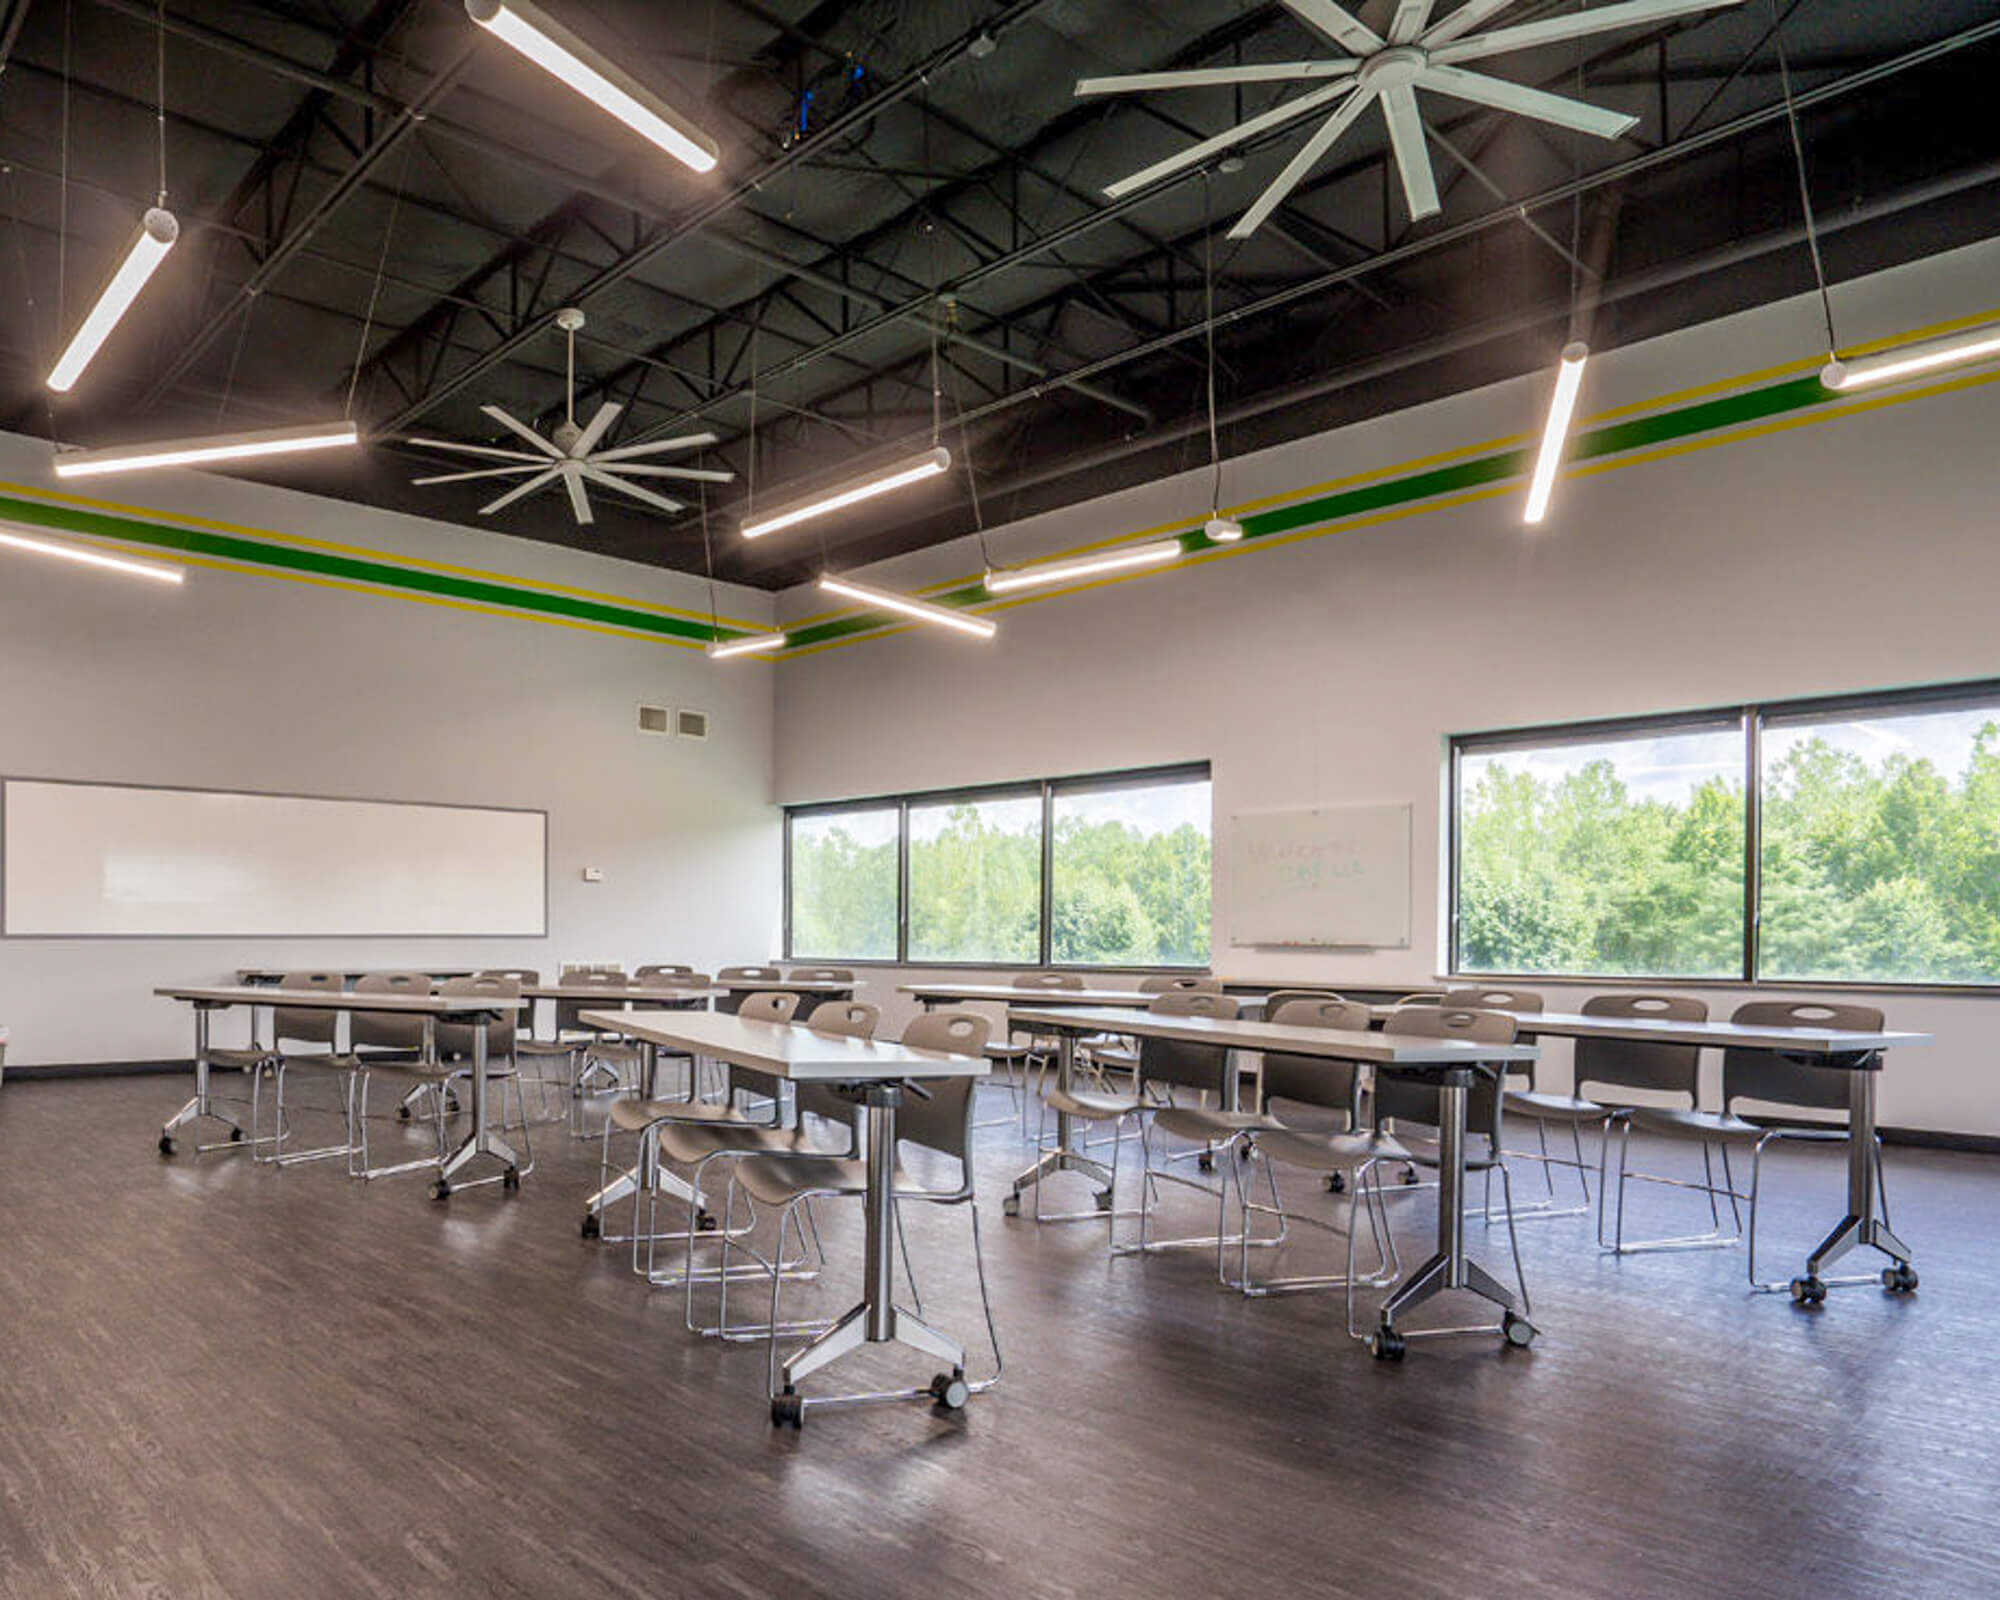 A Commercial Office Remodel in O'Fallon, Missouri